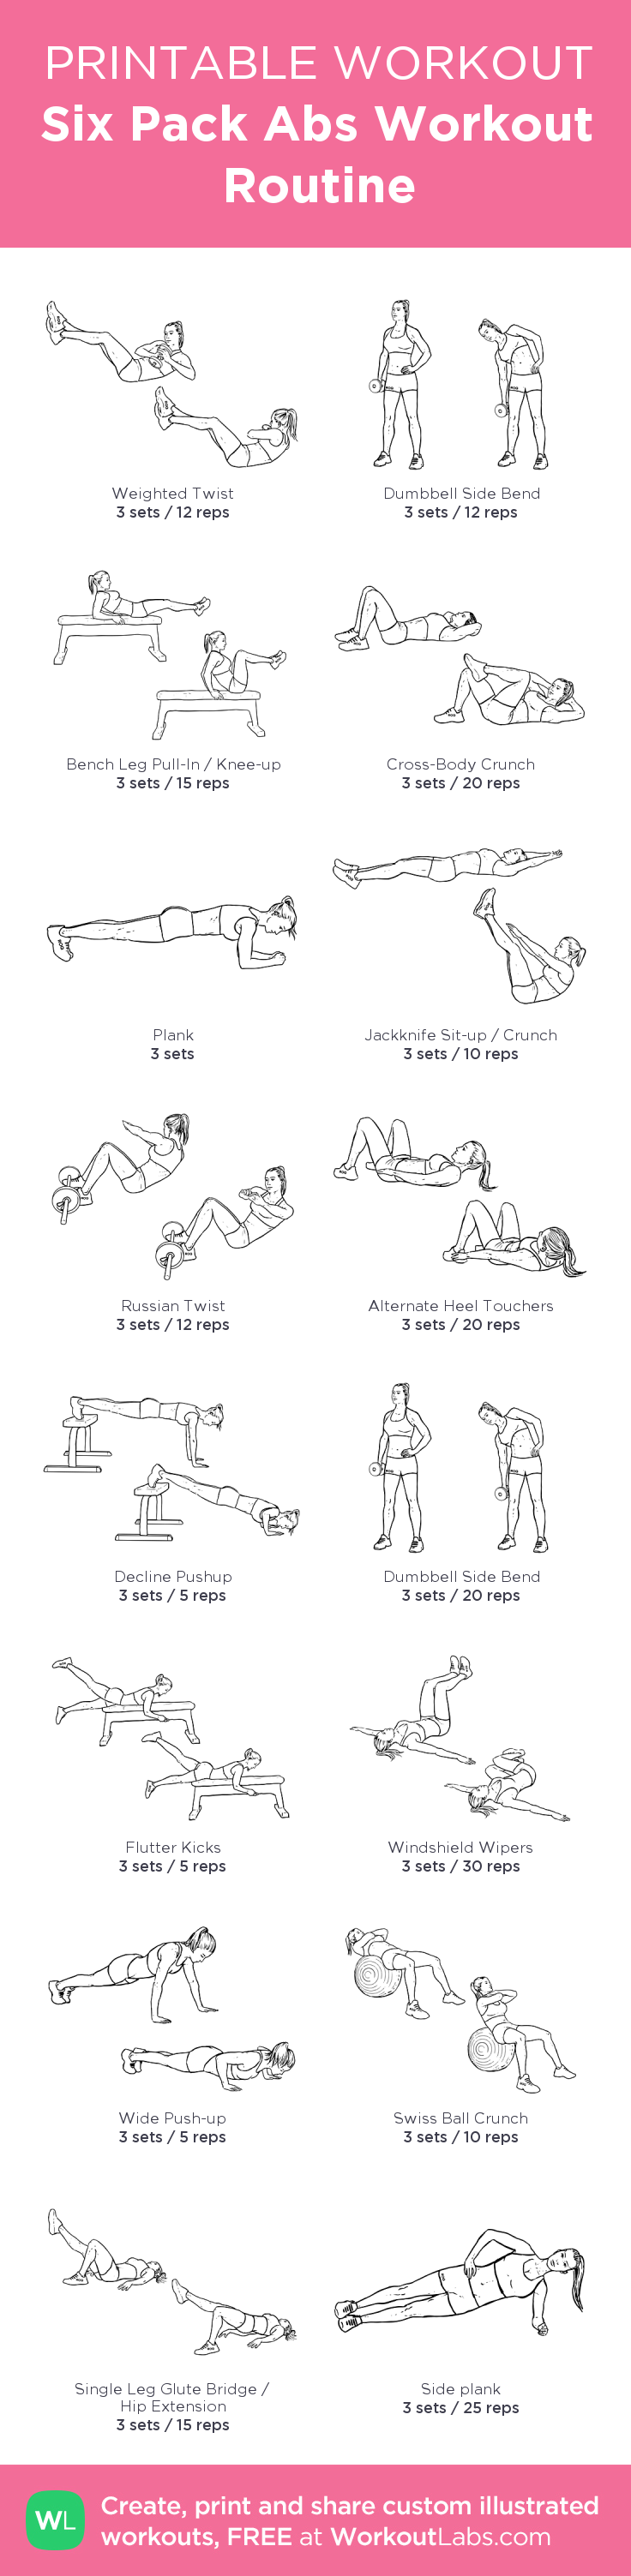 Six Pack Abs Workout Routine: my custom printable workout ...